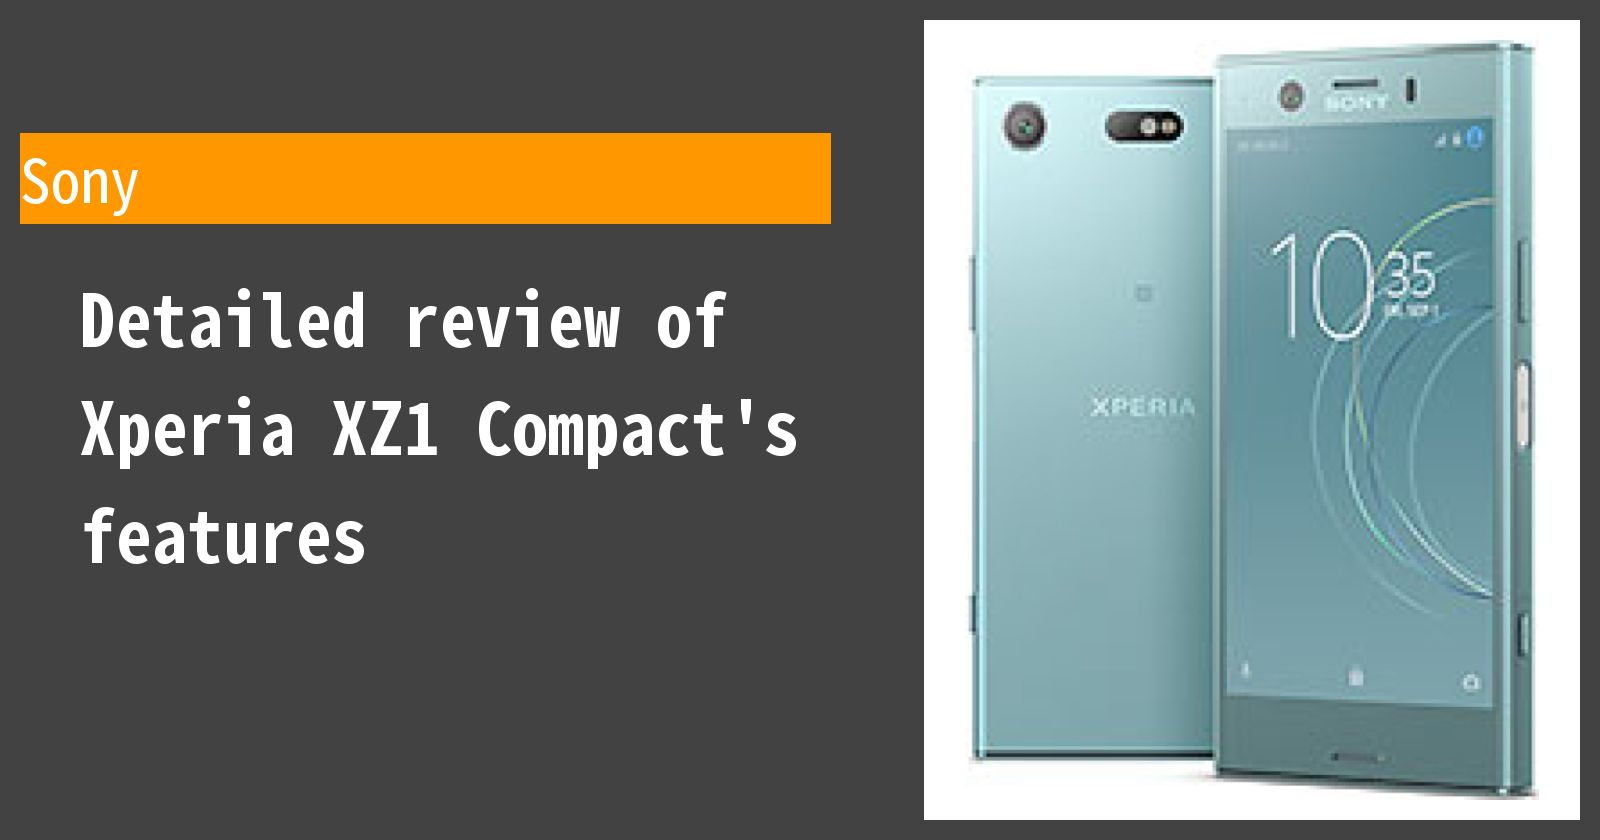 Detailed review of Xperia XZ1 Compact's features